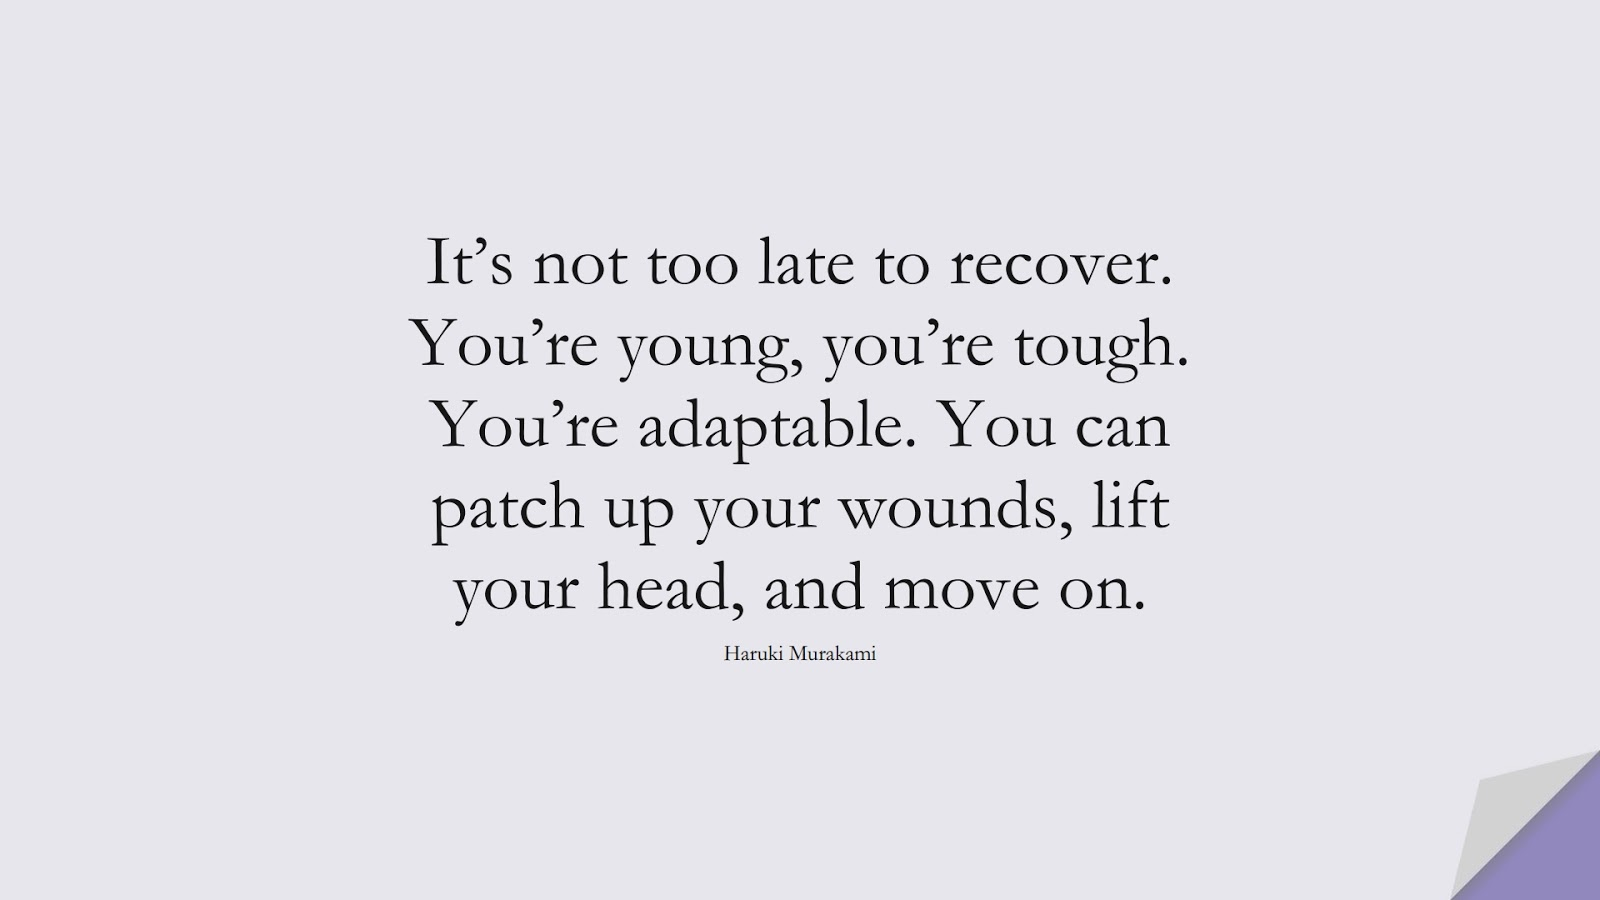 It's not too late to recover. You're young, you're tough. You're adaptable. You can patch up your wounds, lift your head, and move on. (Haruki Murakami);  #EncouragingQuotes